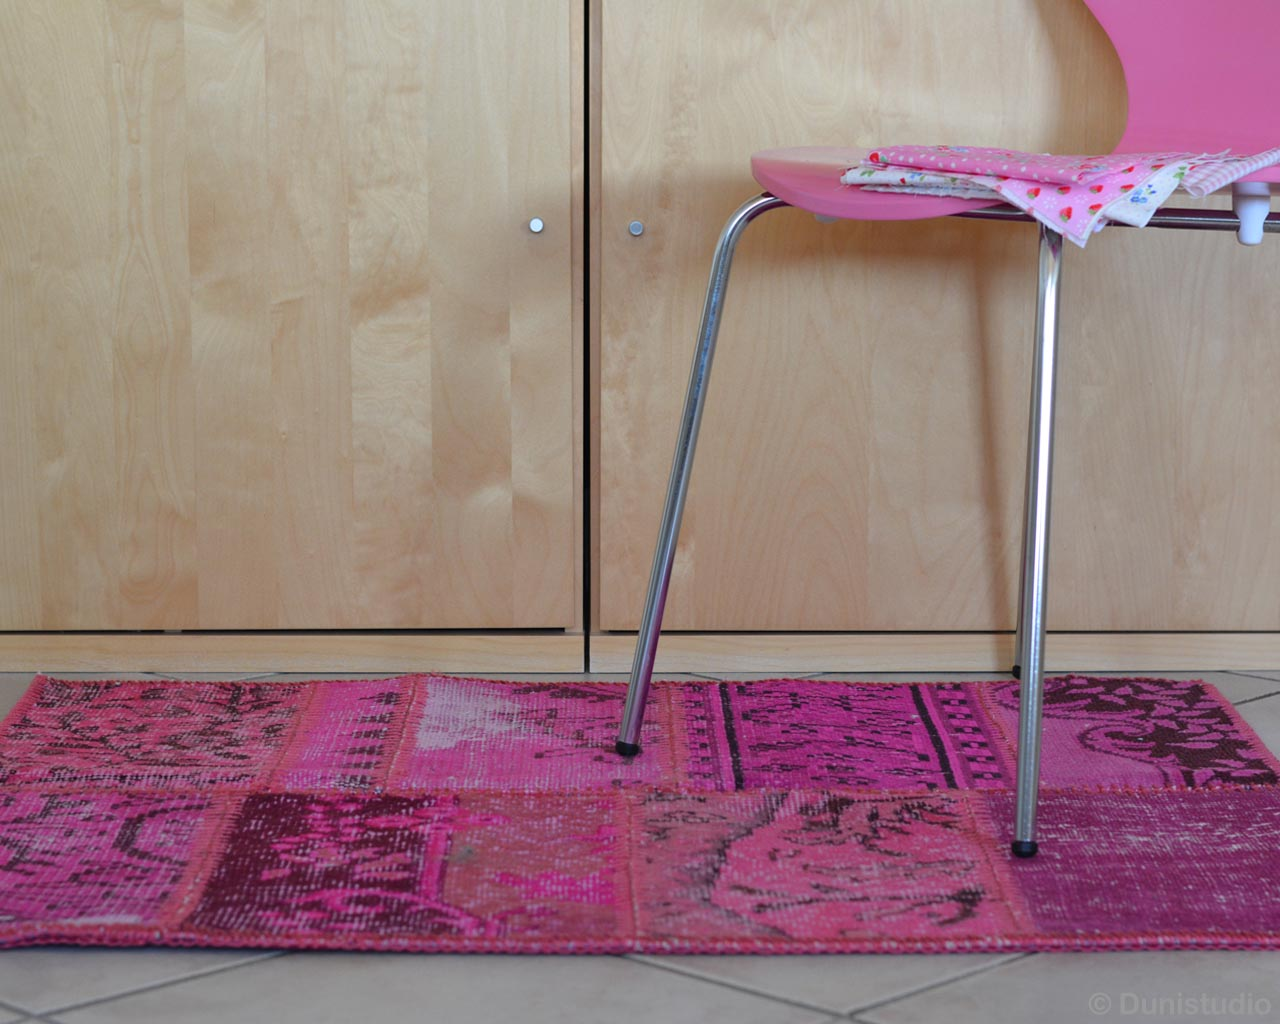 steel chair fresh box pattern floor rugs